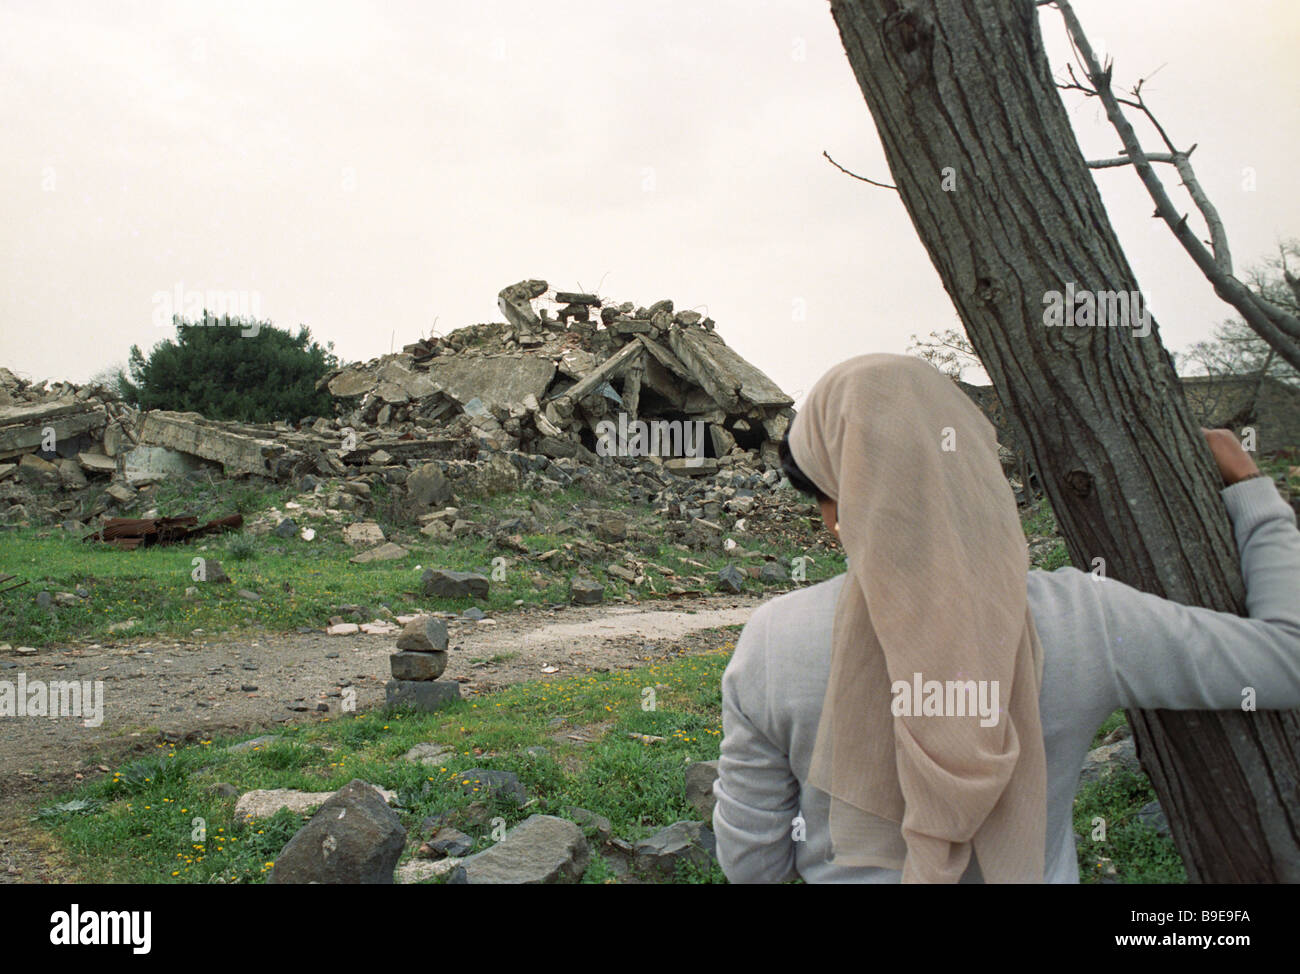 Al Kuneitra destroyed by Israeli forces in 1973 - Stock Image